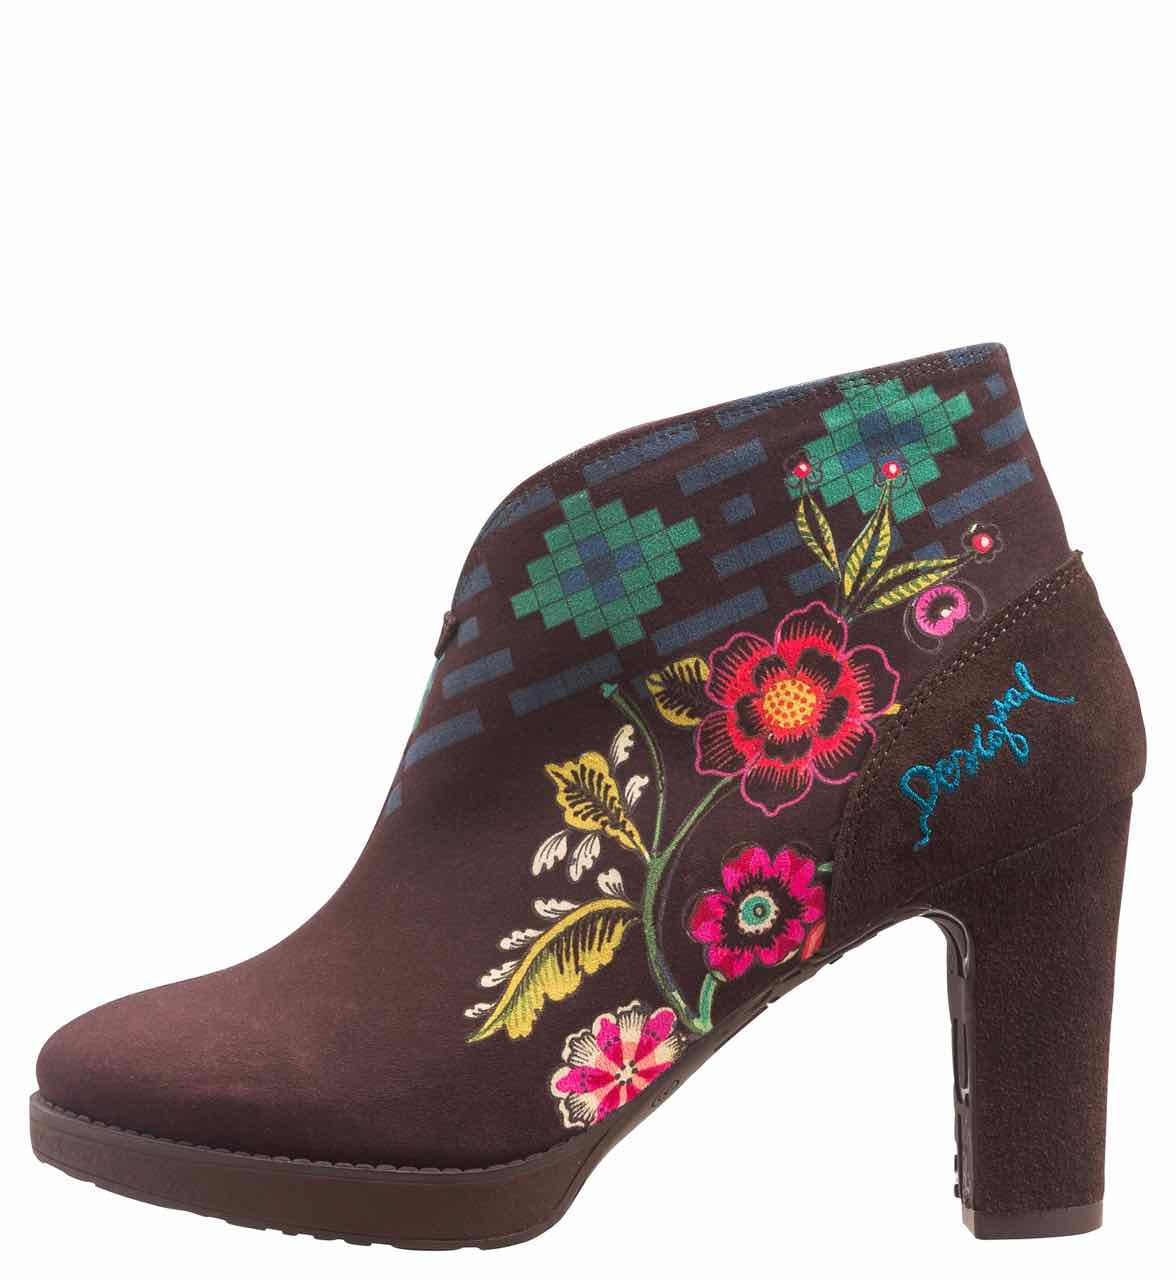 Desigual Boots Eva, Brown with flowers